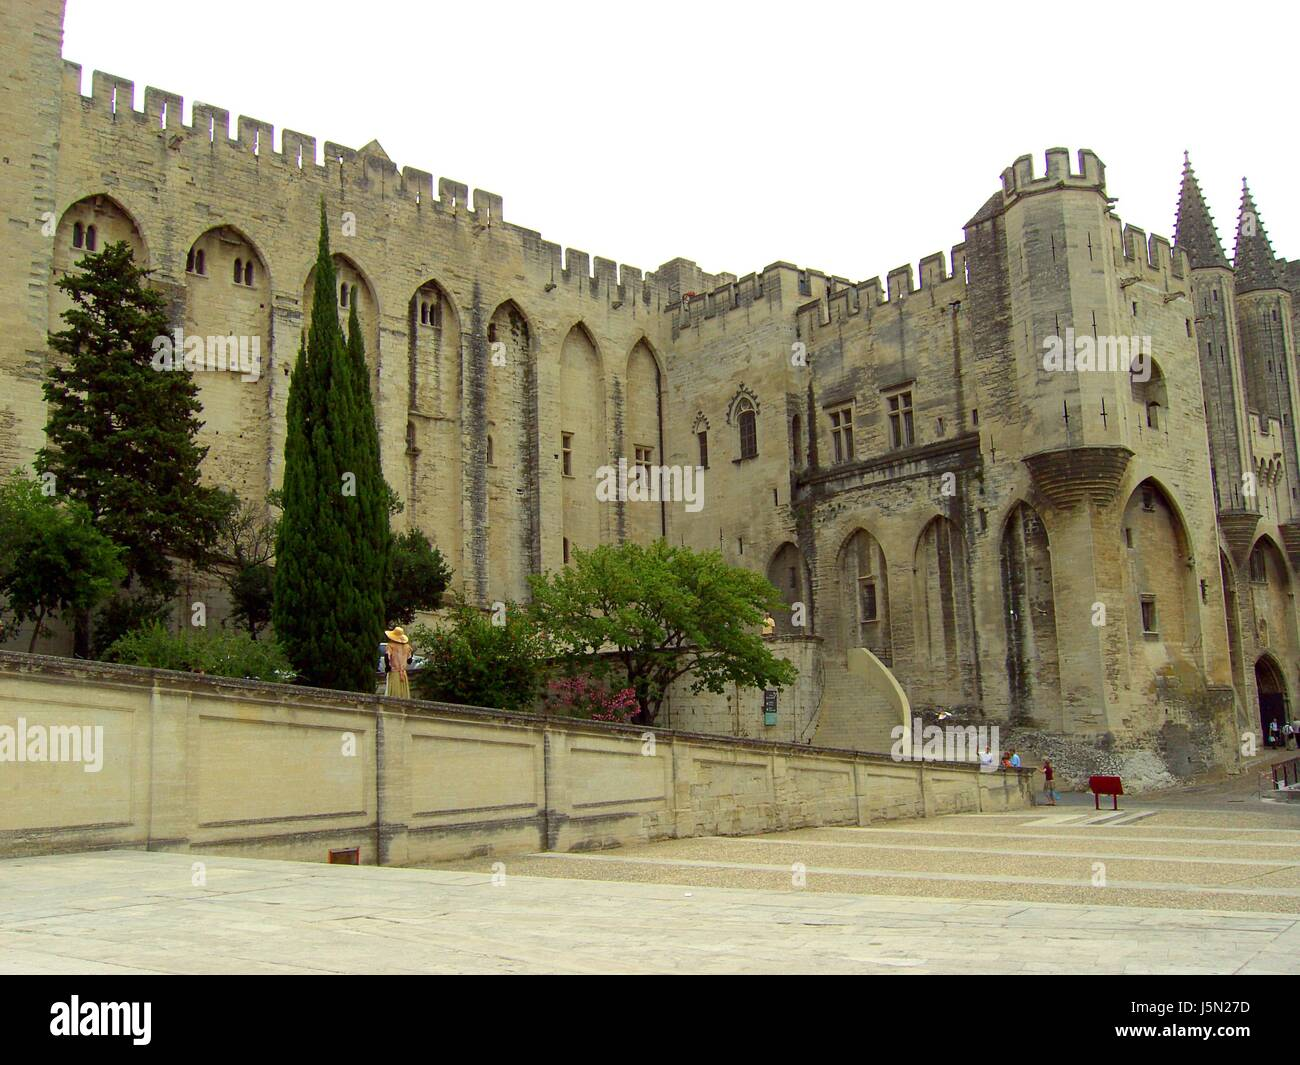 historical france gothically palace Provence gothic chateau castle old avignon - Stock Image